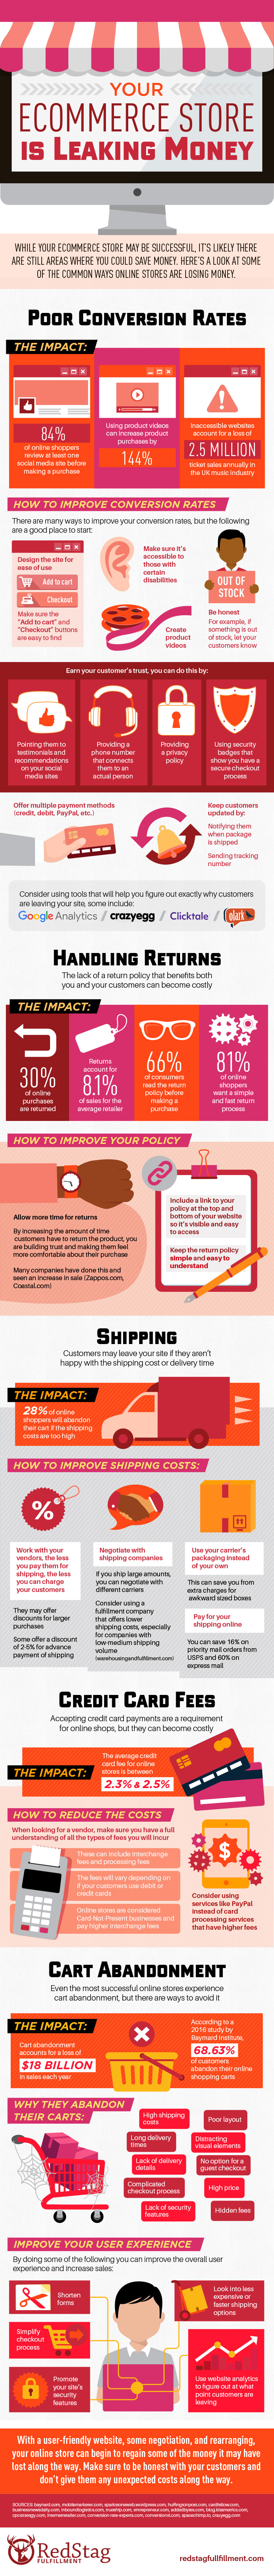 why is your online store loosing money? Infographic